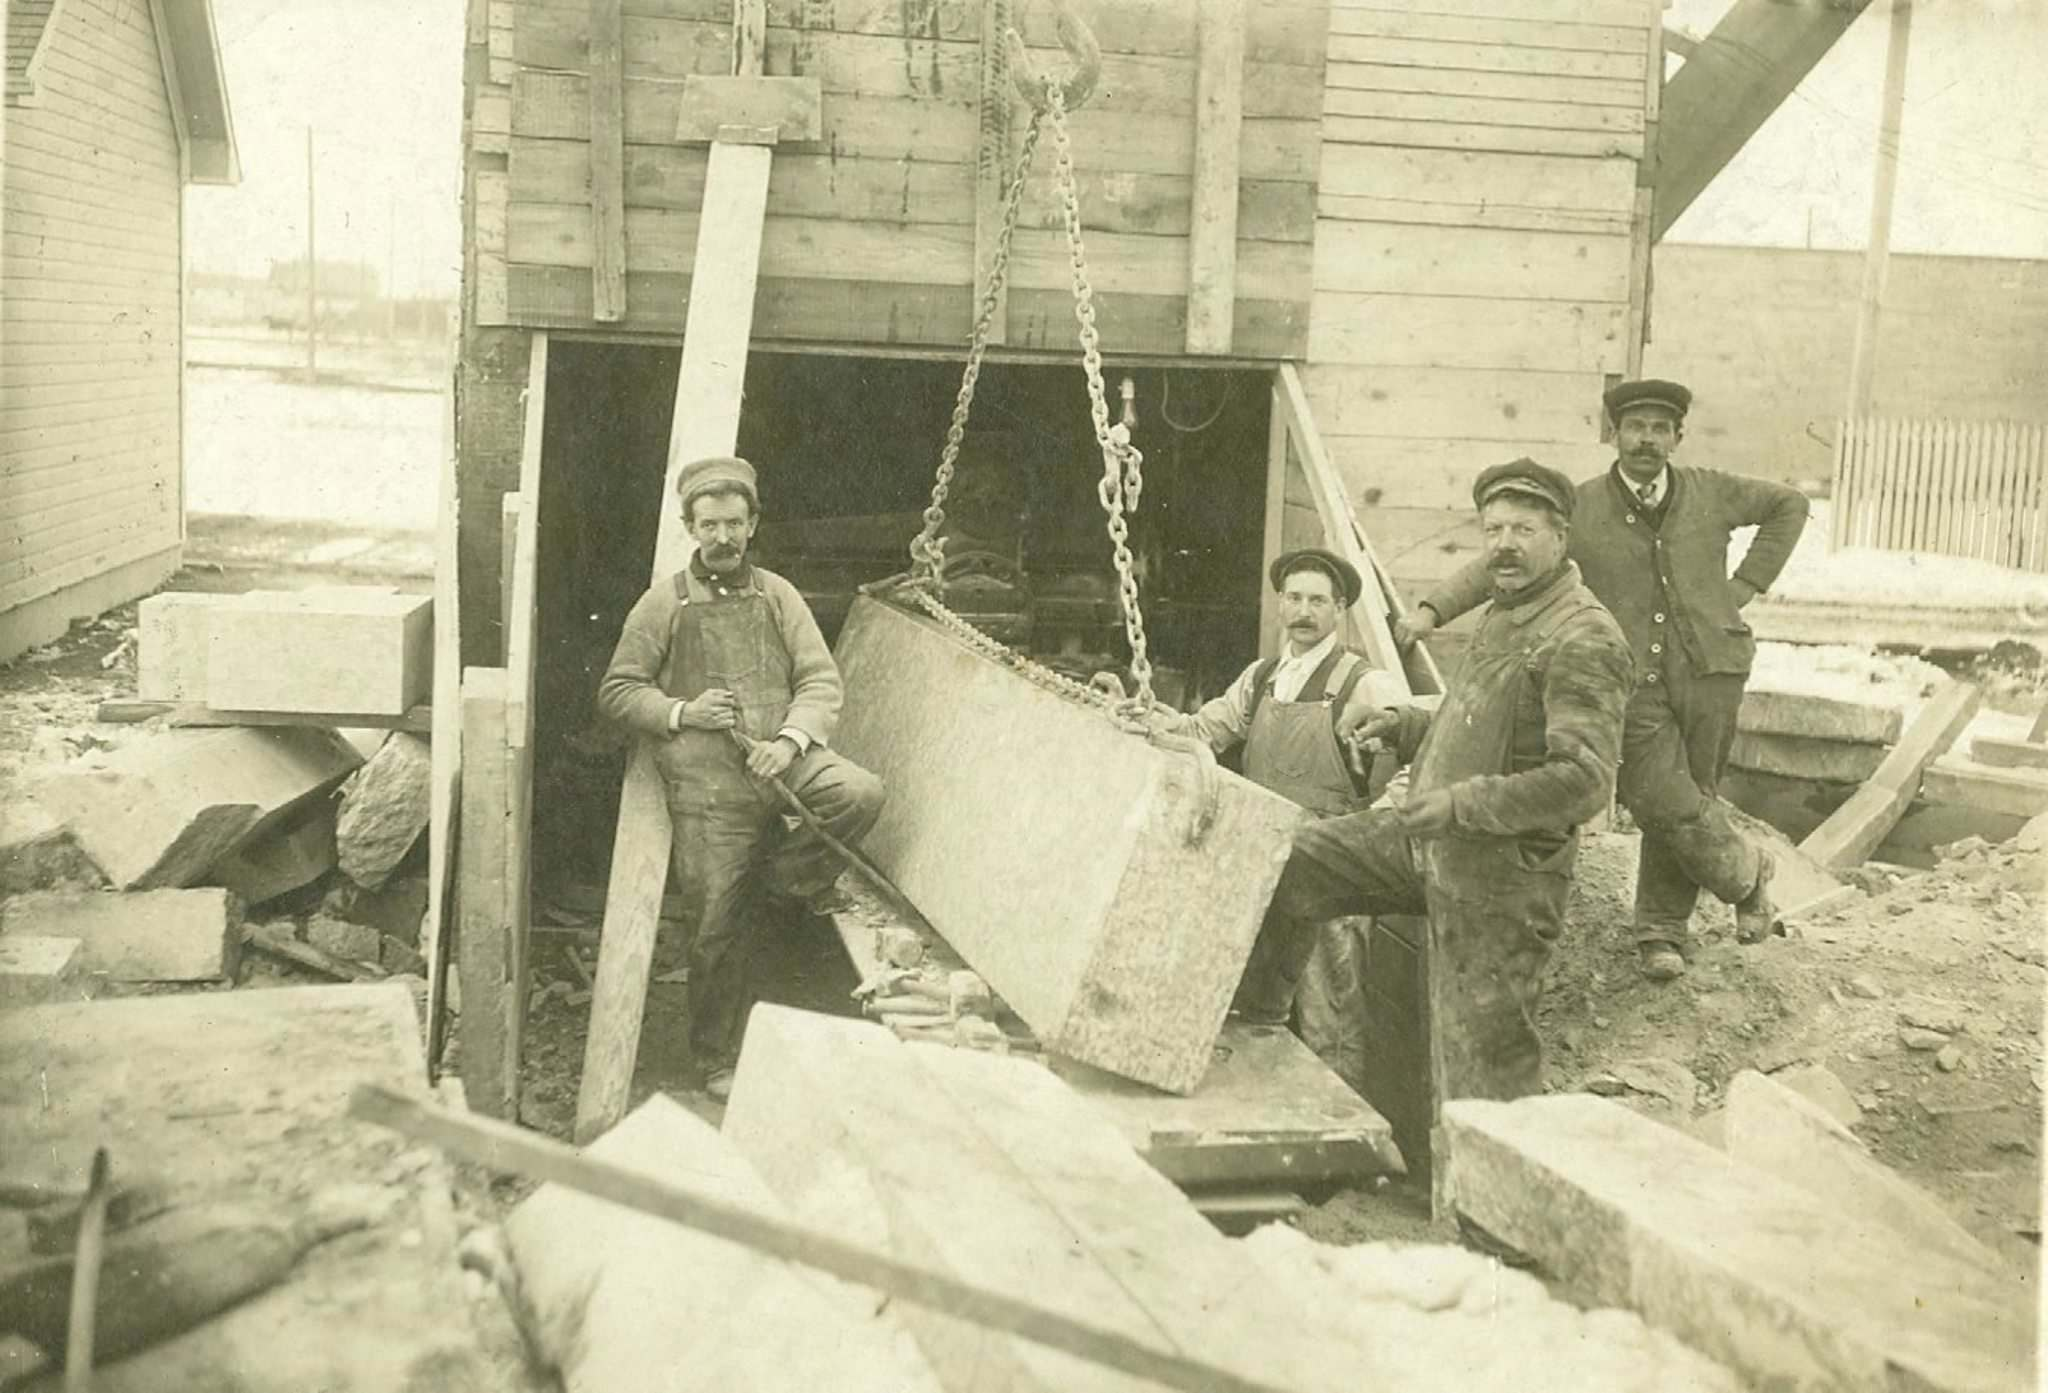 GILLIS QUARRIES LIMITED ARCHIVES</p><p>August Gillis, founder of Gillis Quarries, second from right.</p>